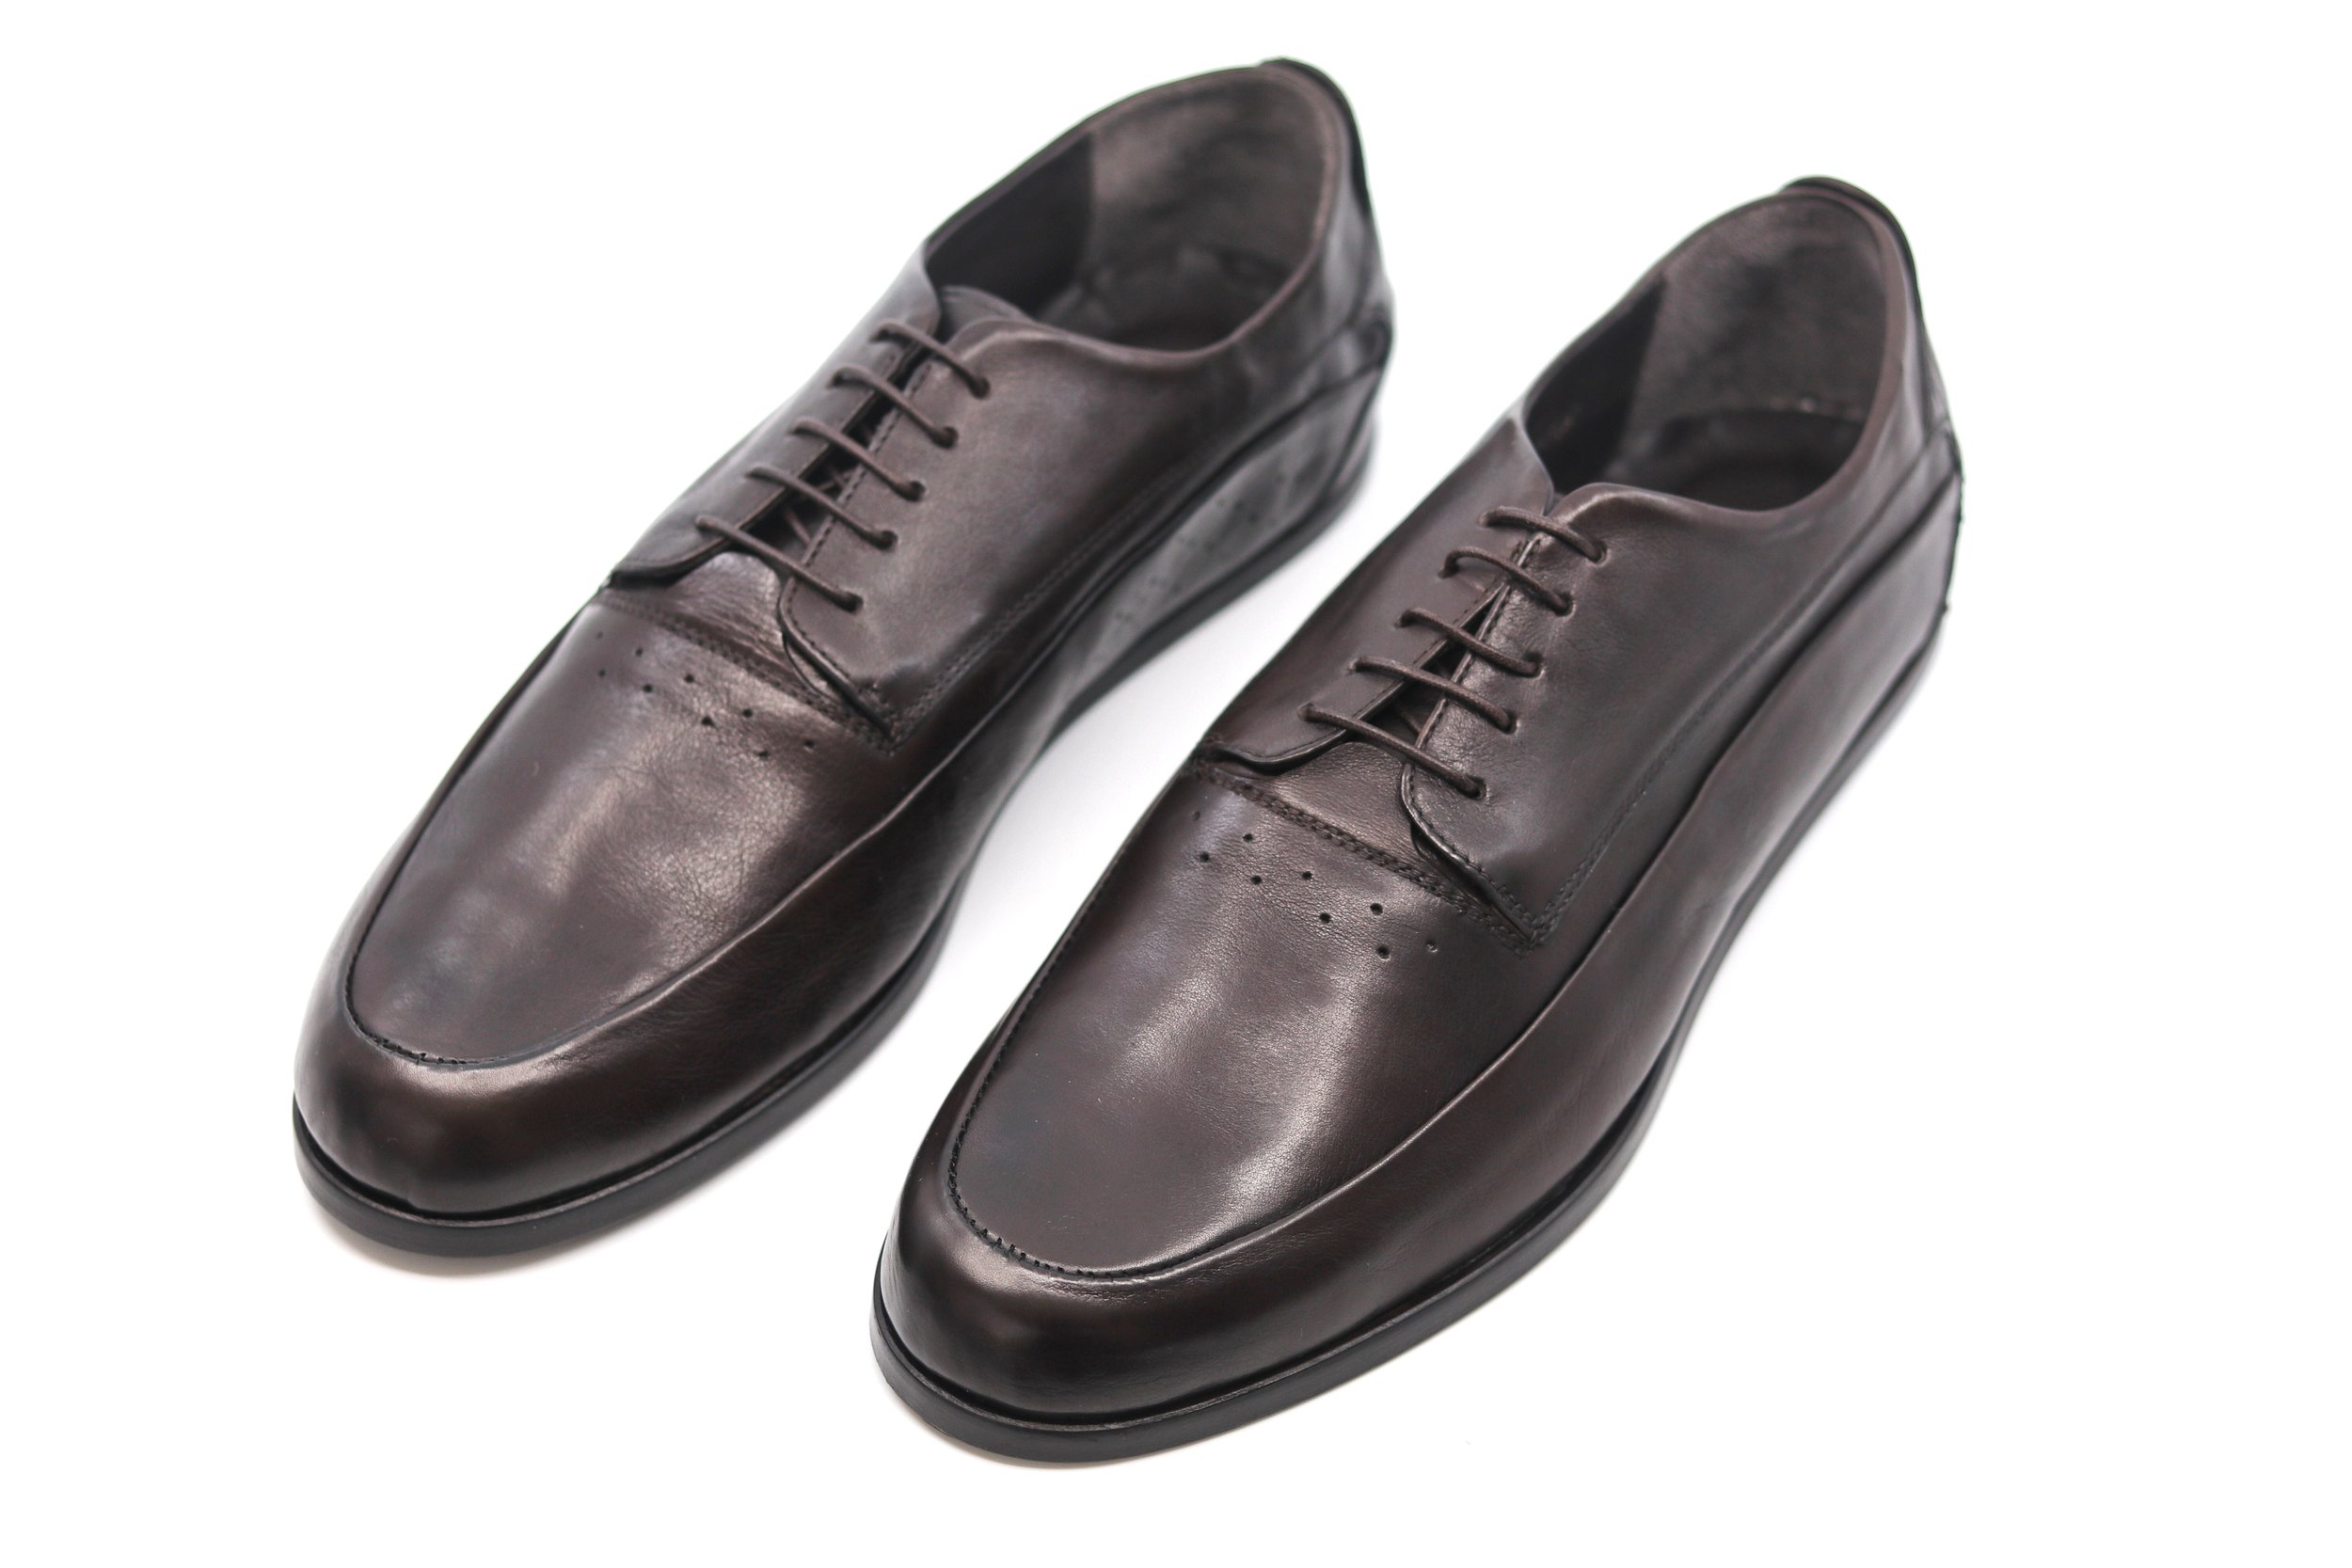 ICANCHU - ZERO DROP DRESS SHOE - PAIR.jpg